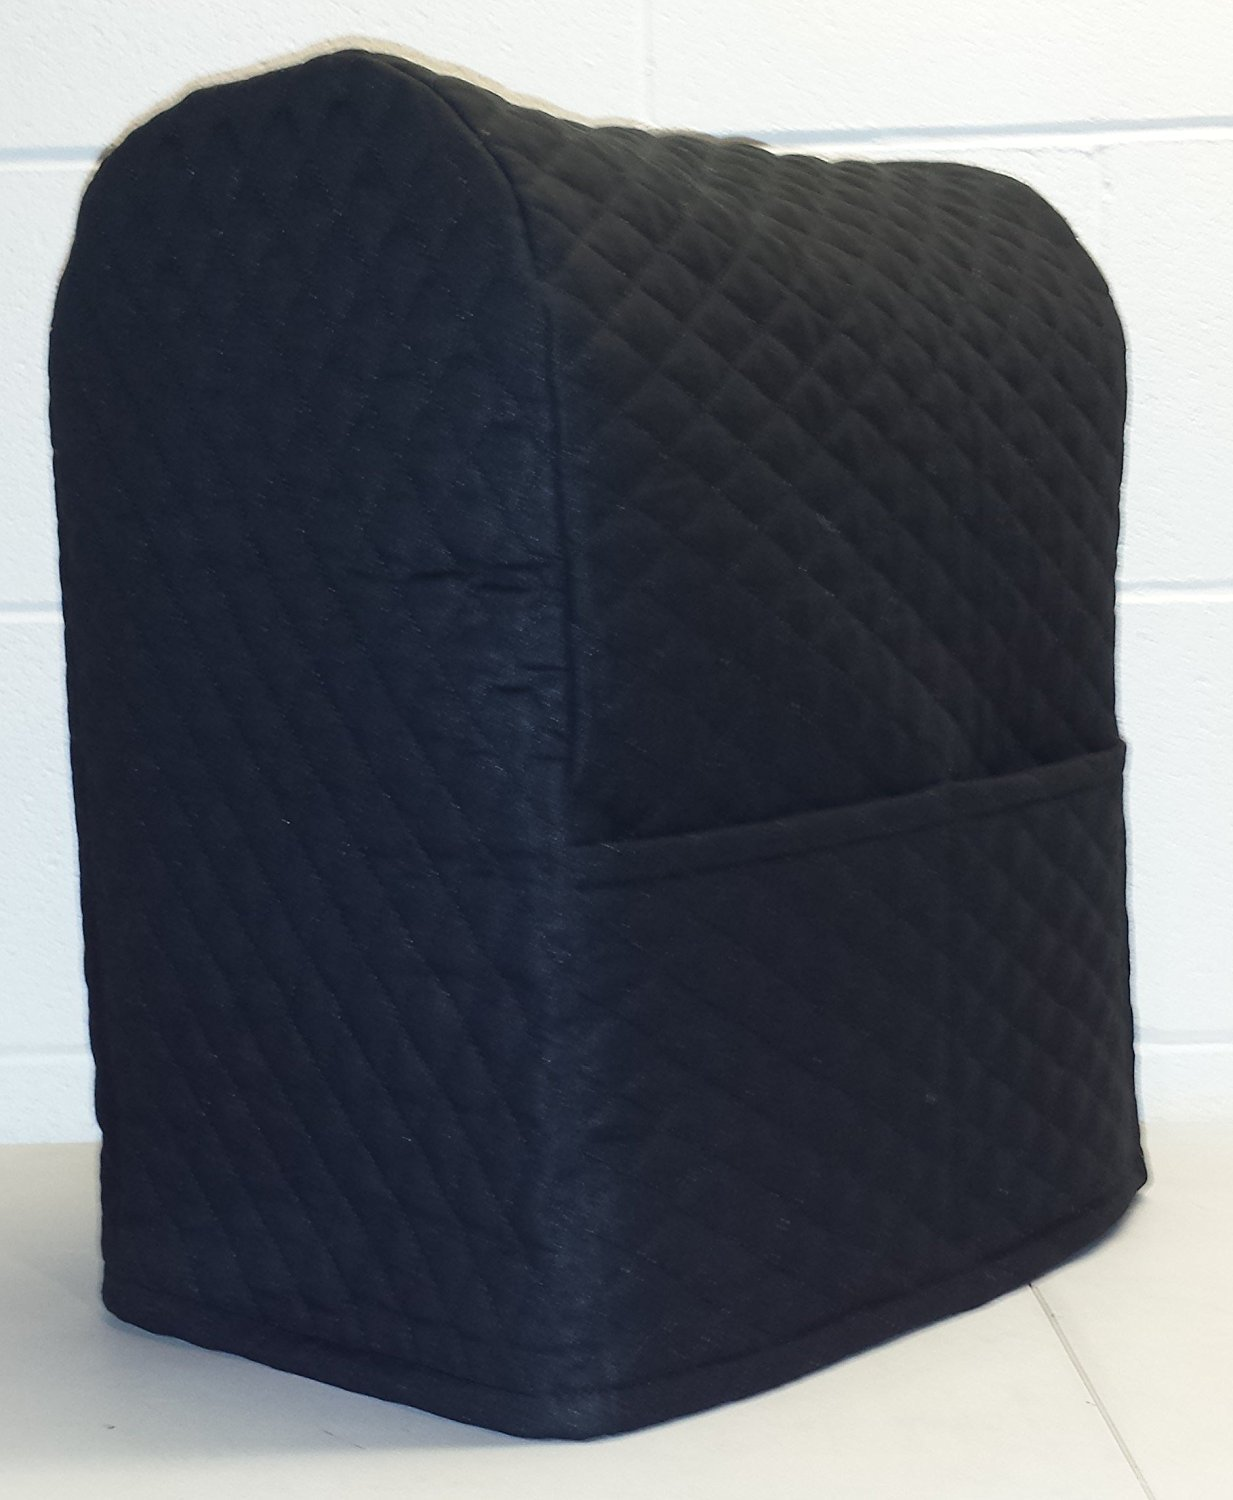 Quilted Kitchenaid Lift Bowl Stand Mixer Cover (Black) Penny' s Needful Things